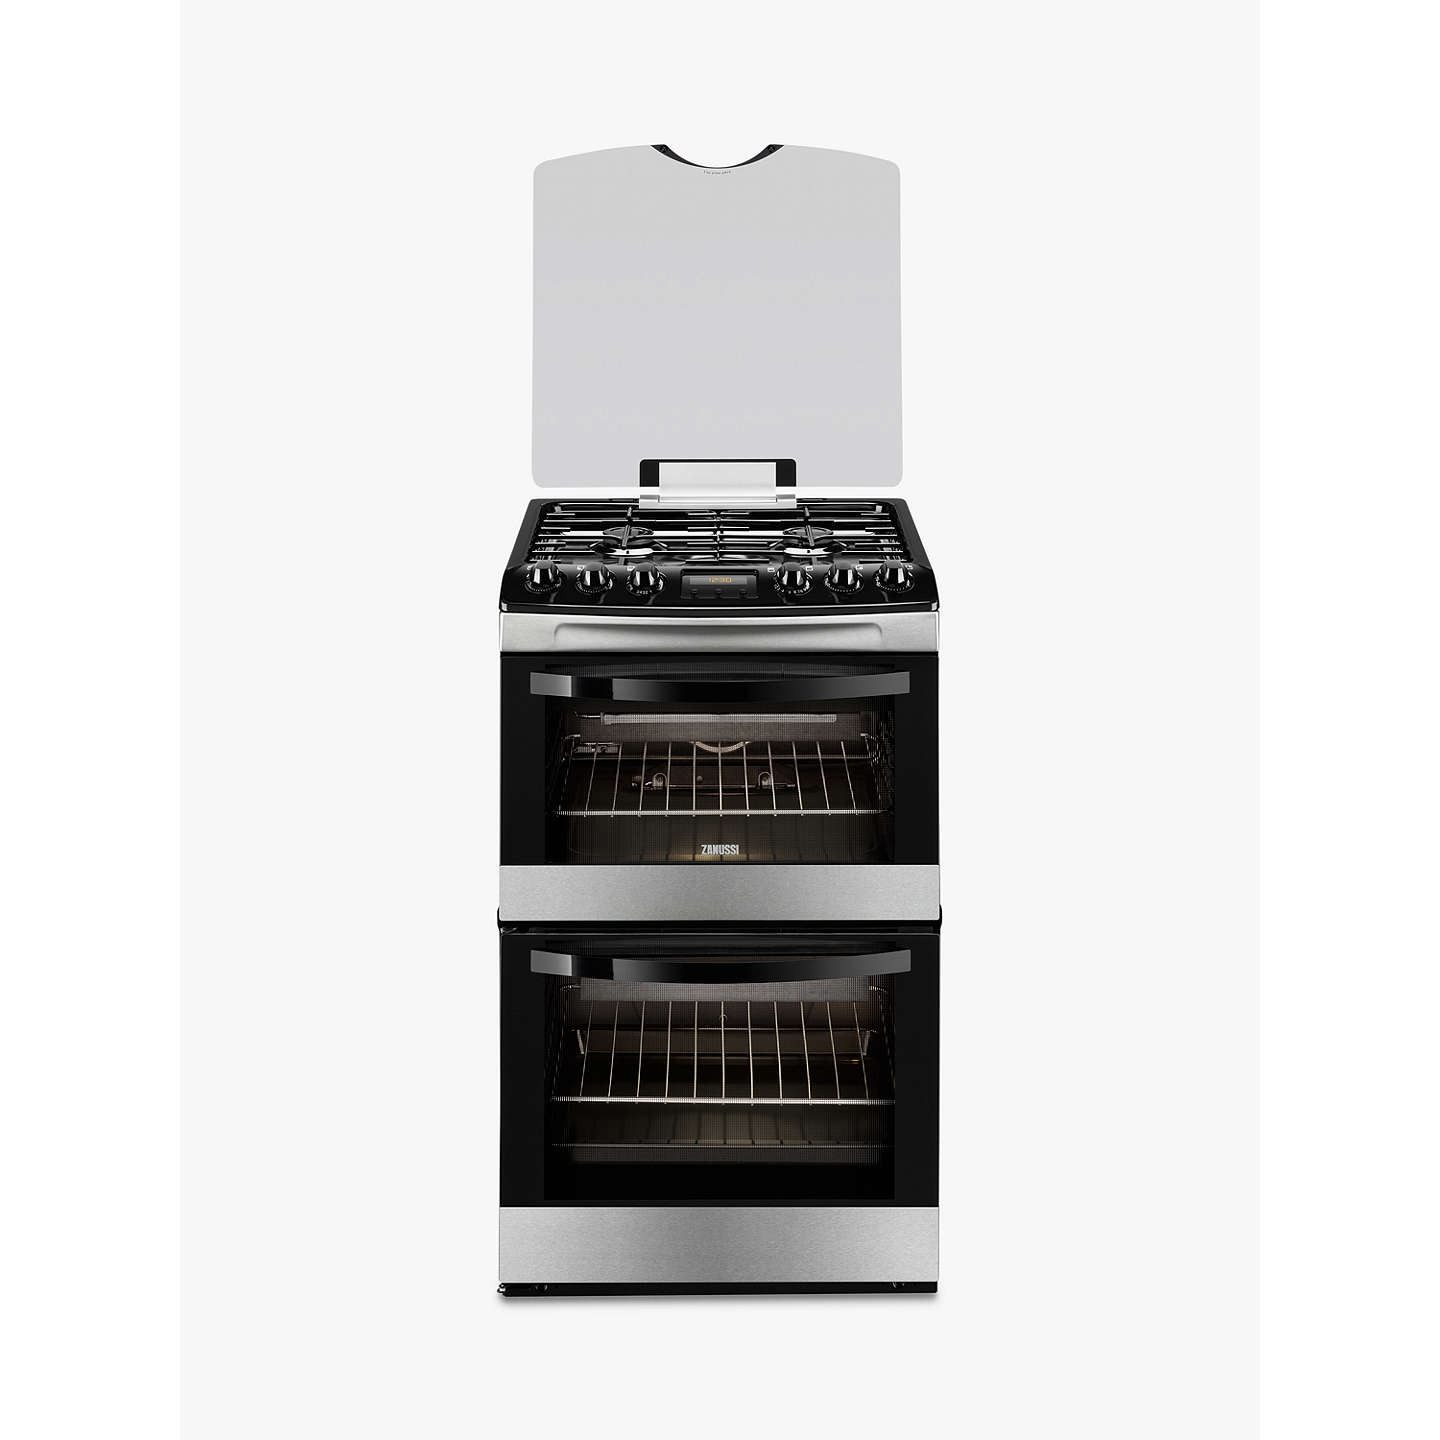 zanussi zcg43200xa gas cooker stainless steel at john lewis. Black Bedroom Furniture Sets. Home Design Ideas